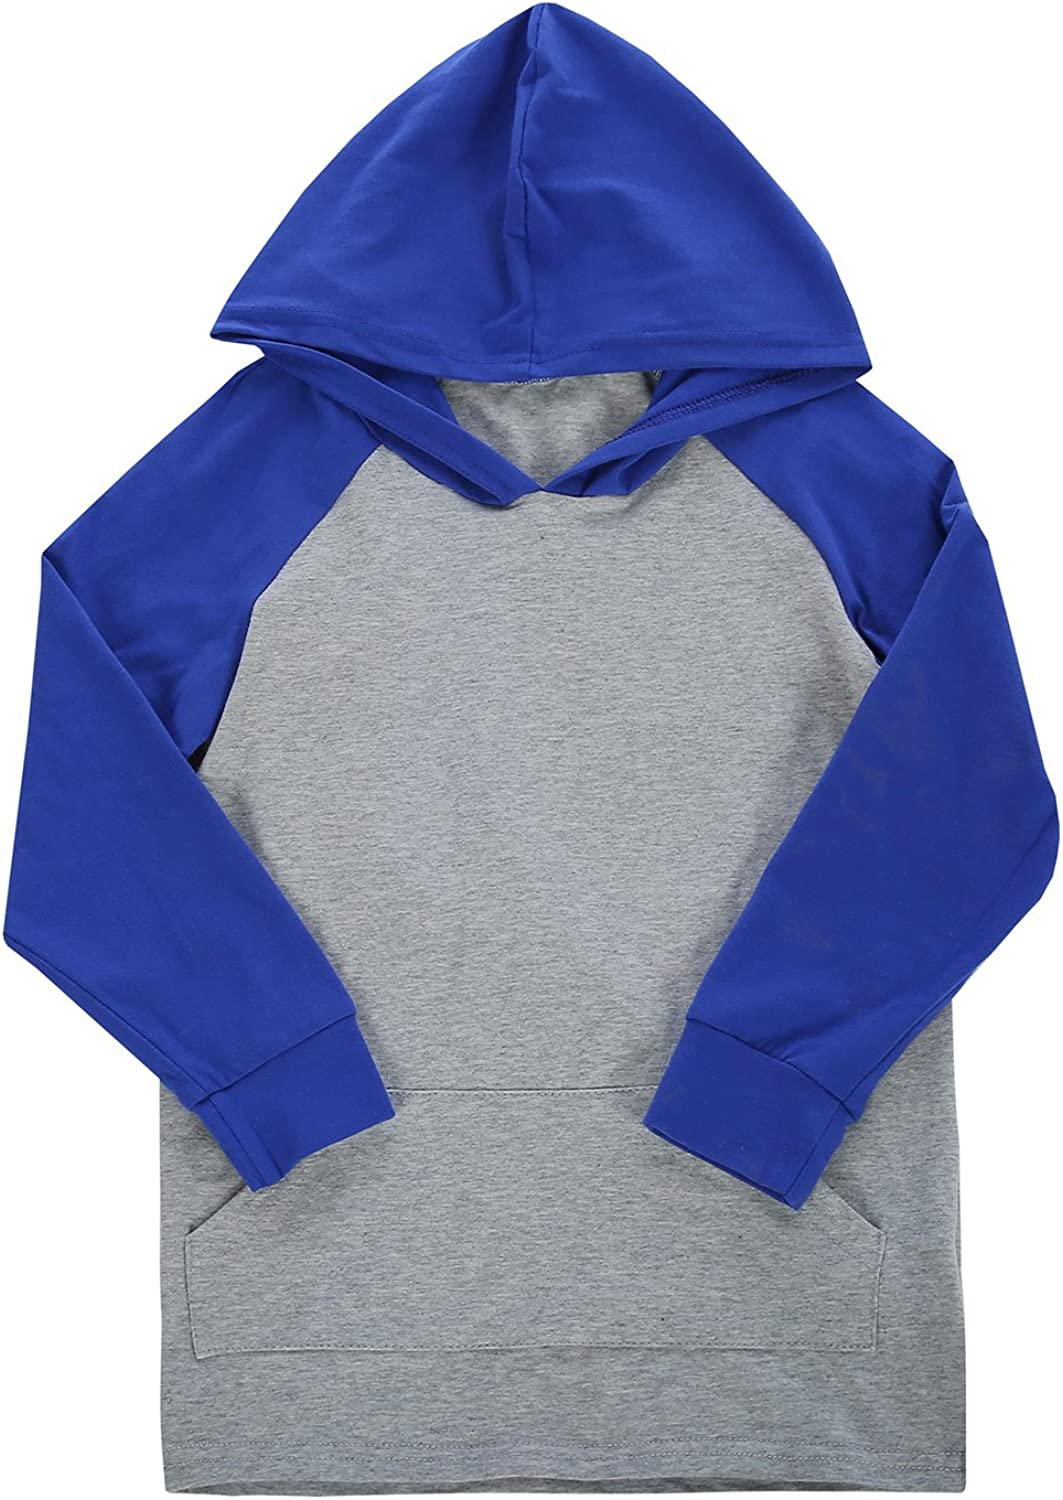 Daomumen Girls and Boys Long Sleeve Hoodie Shirts Color Block Lightweight Tops Front Sweatshirts with Pockets